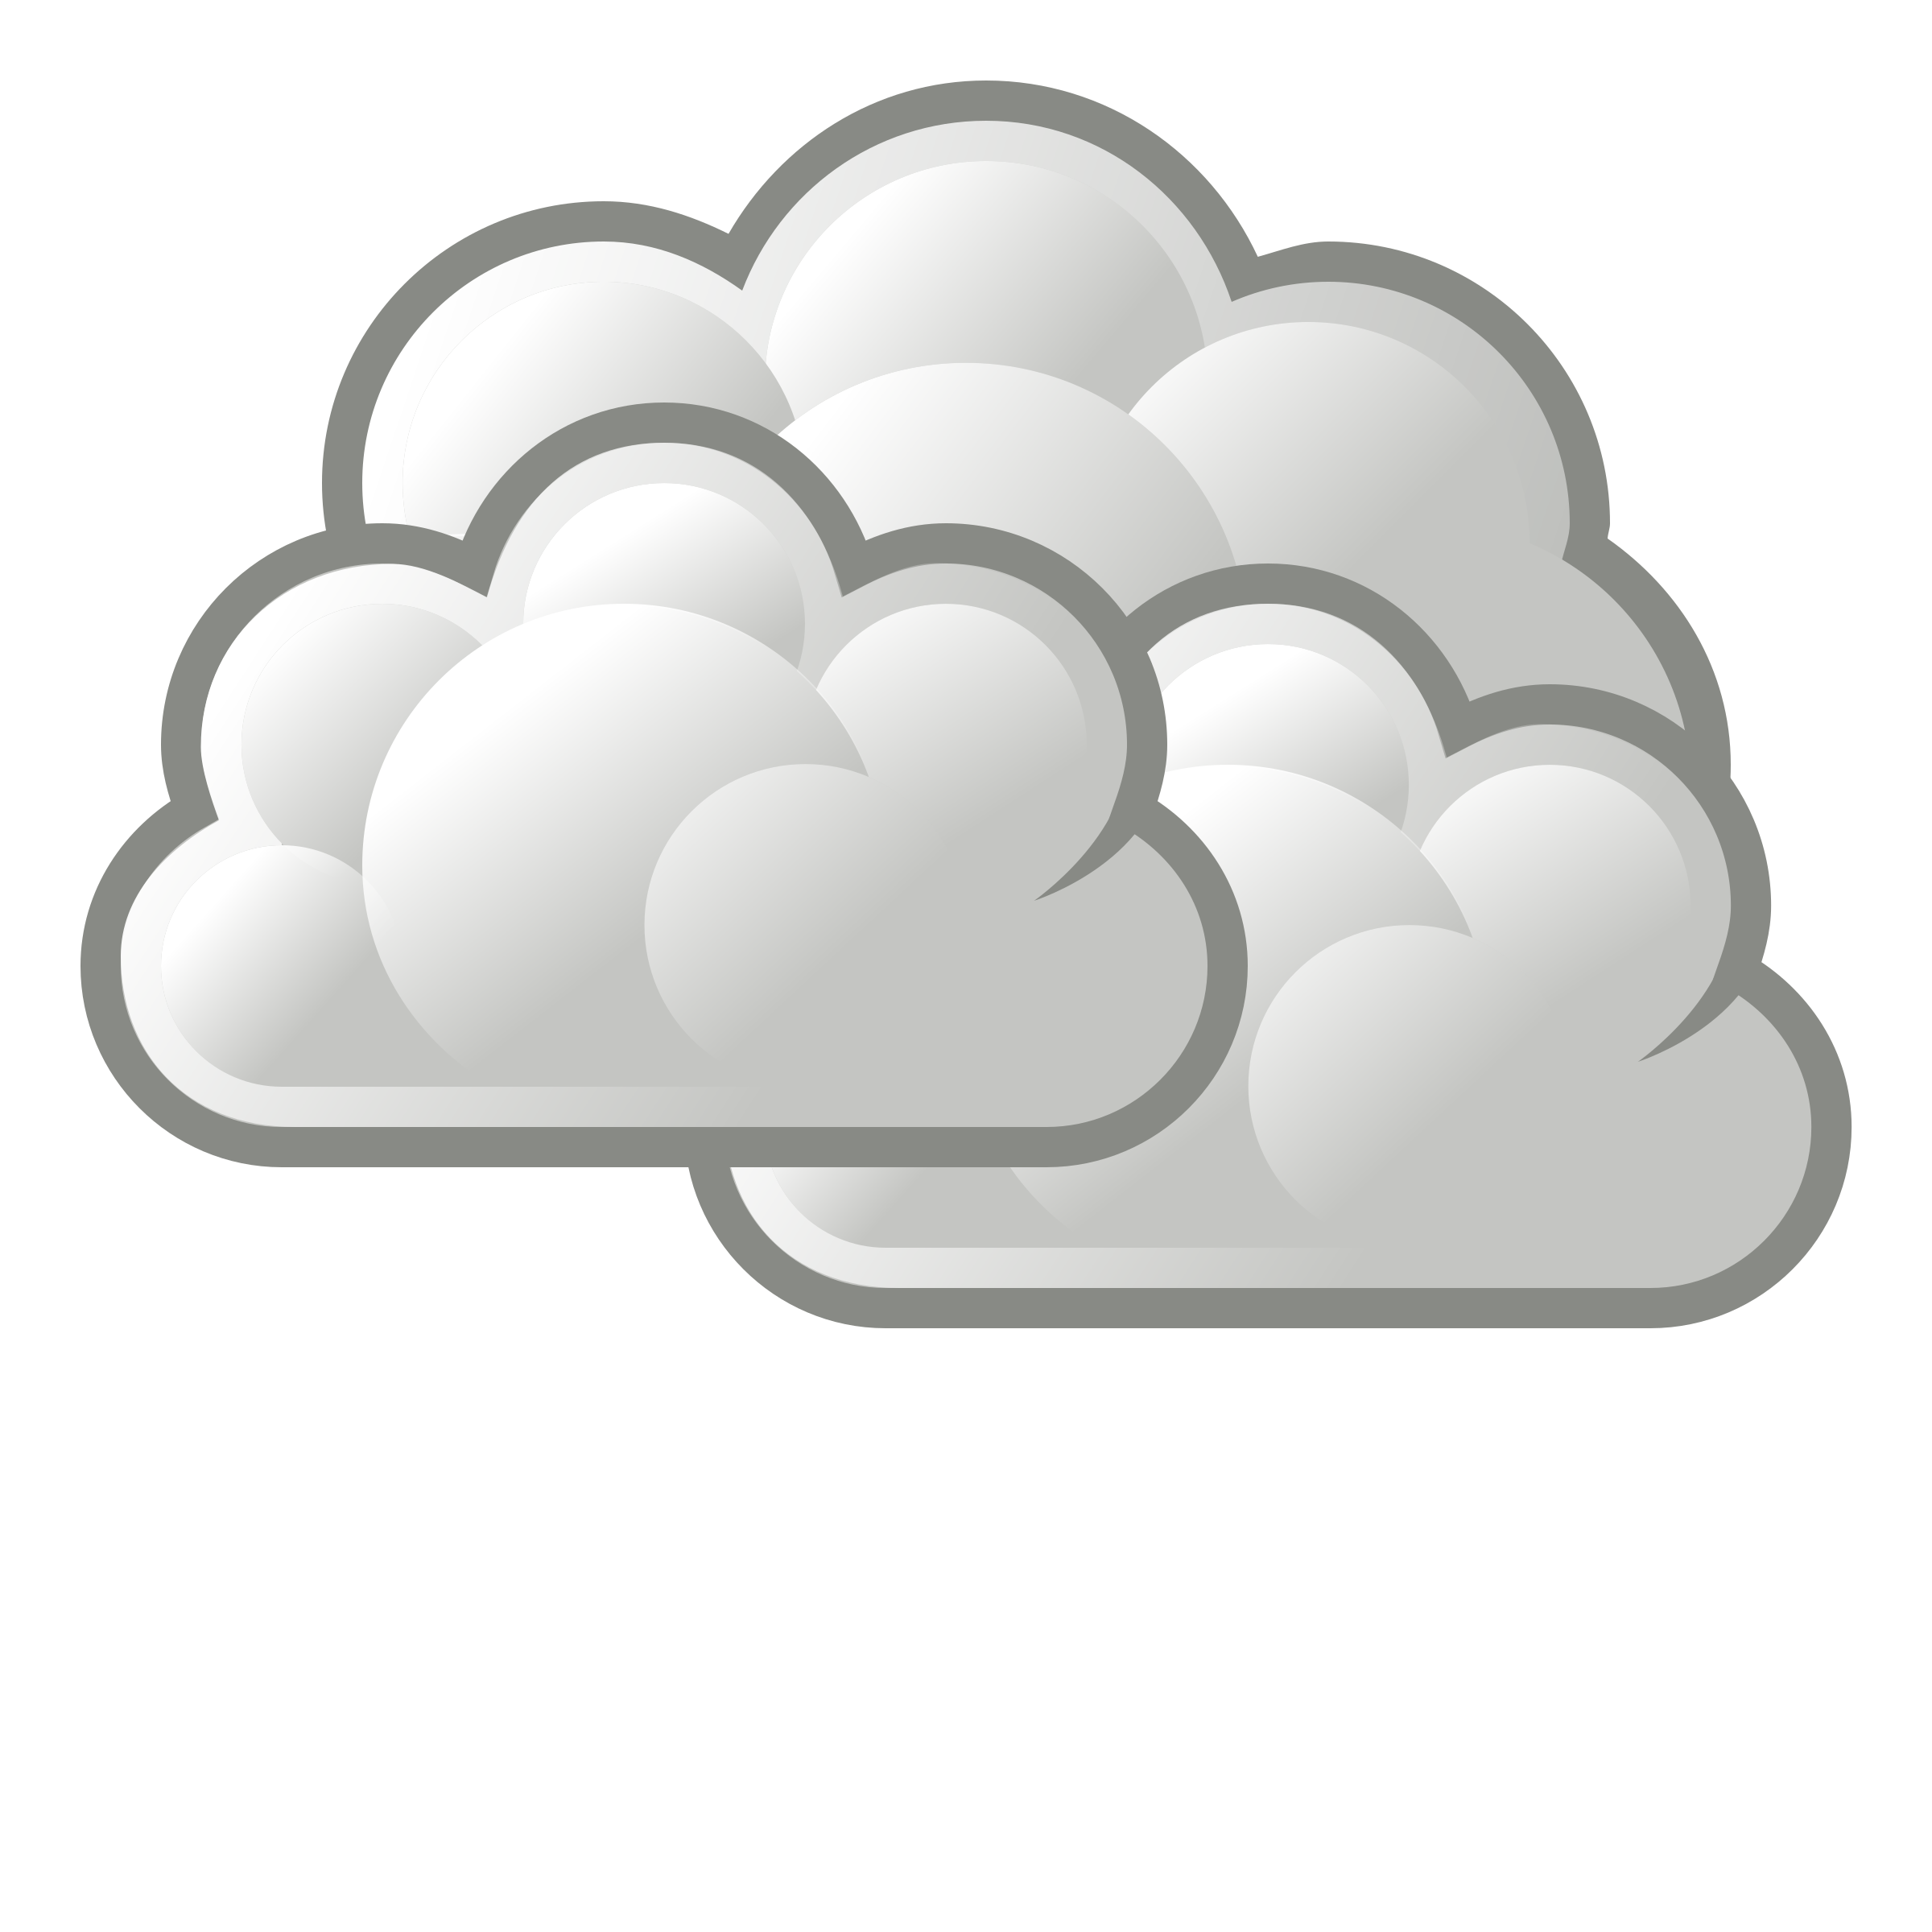 collection of cloudy. Windy clipart snowy weather